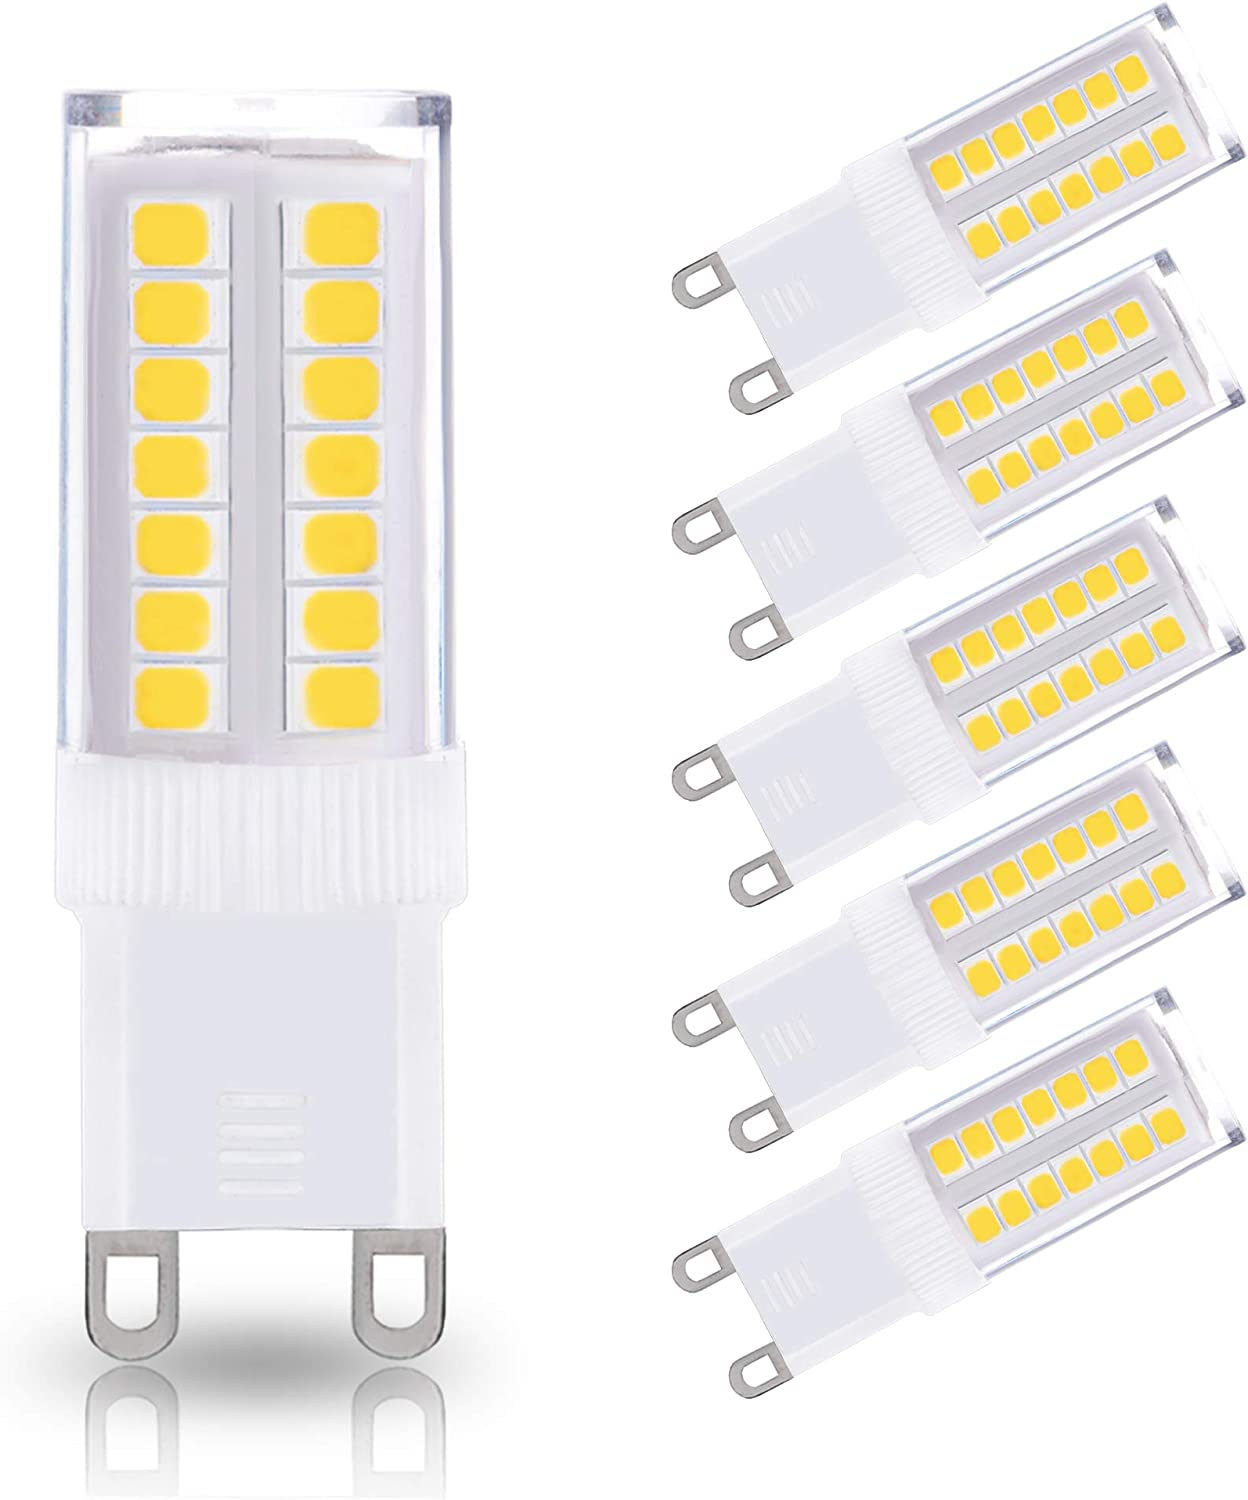 JandCase G12 Led Light Bulbs, 12W, 12W Halogen Equivalent, 120LM, Natural  Daylight White 1200K, G12 Base, G12 Bulbs for Chandelier, Wall Sconce, Not ...